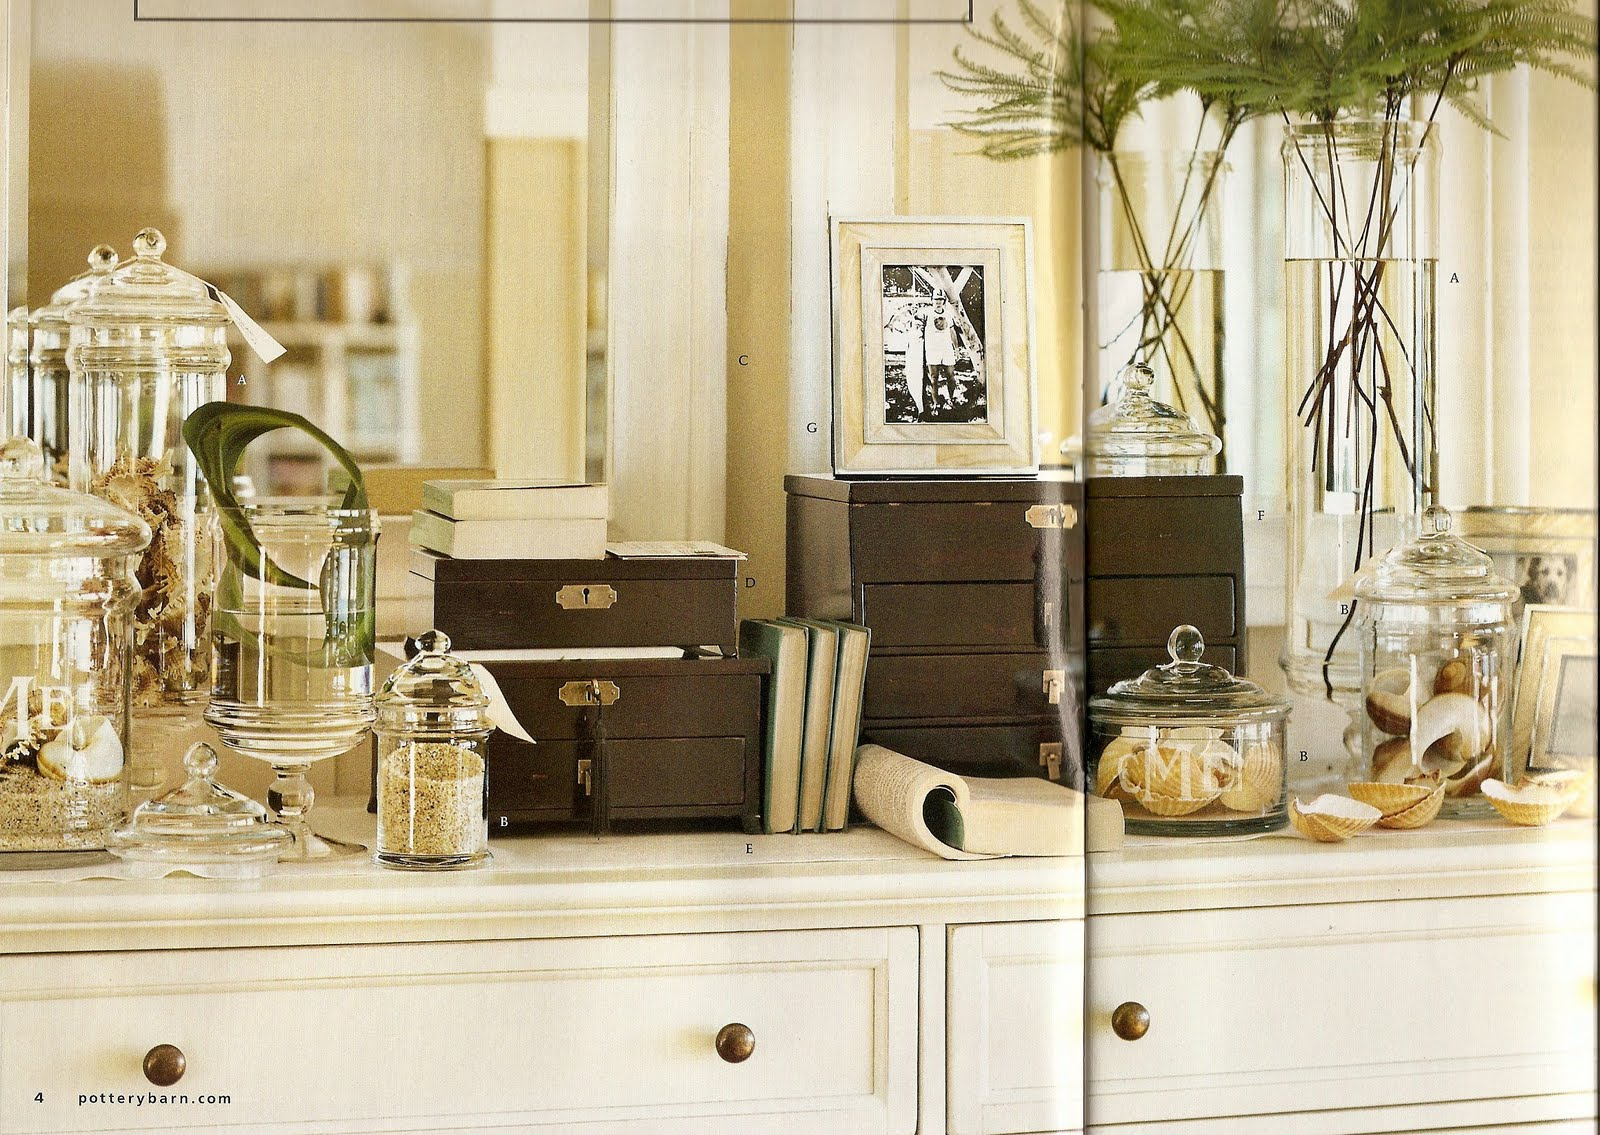 bathroom vanity accessories inspirations january 2011 372